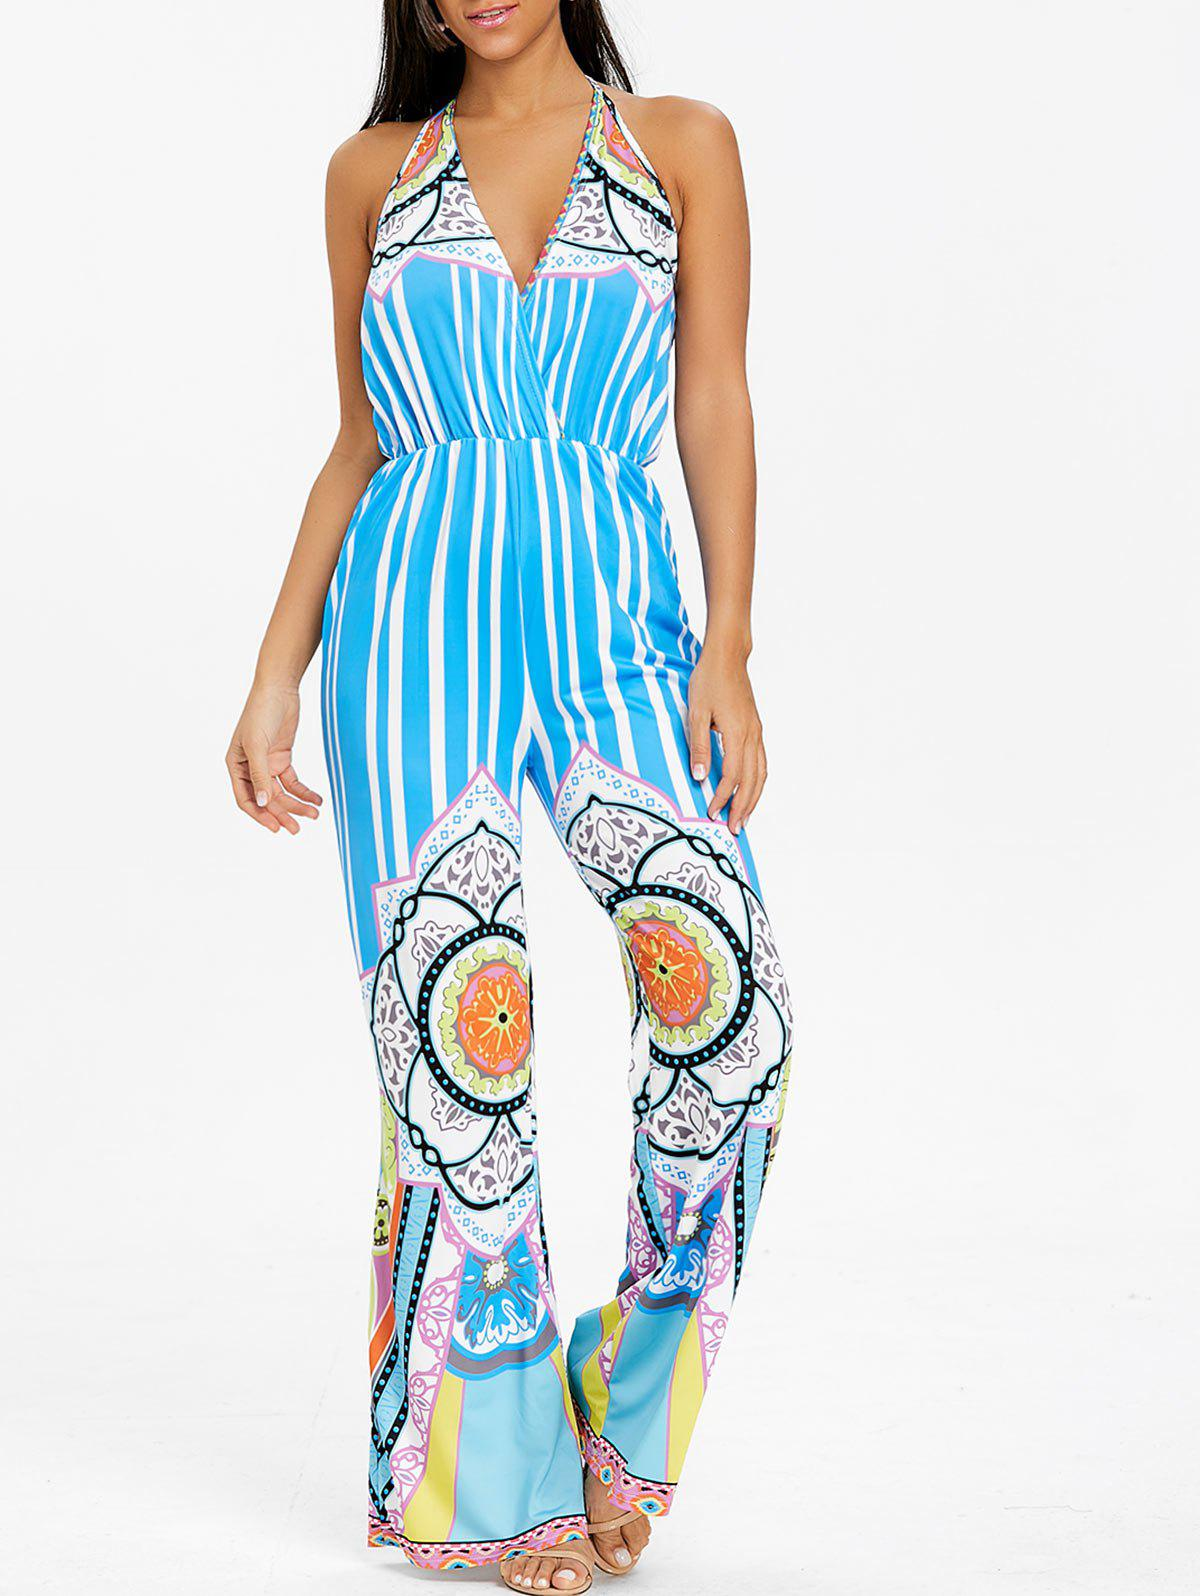 Striped Tribal Print Backless Jumpsuit - WINDSOR BLUE XL